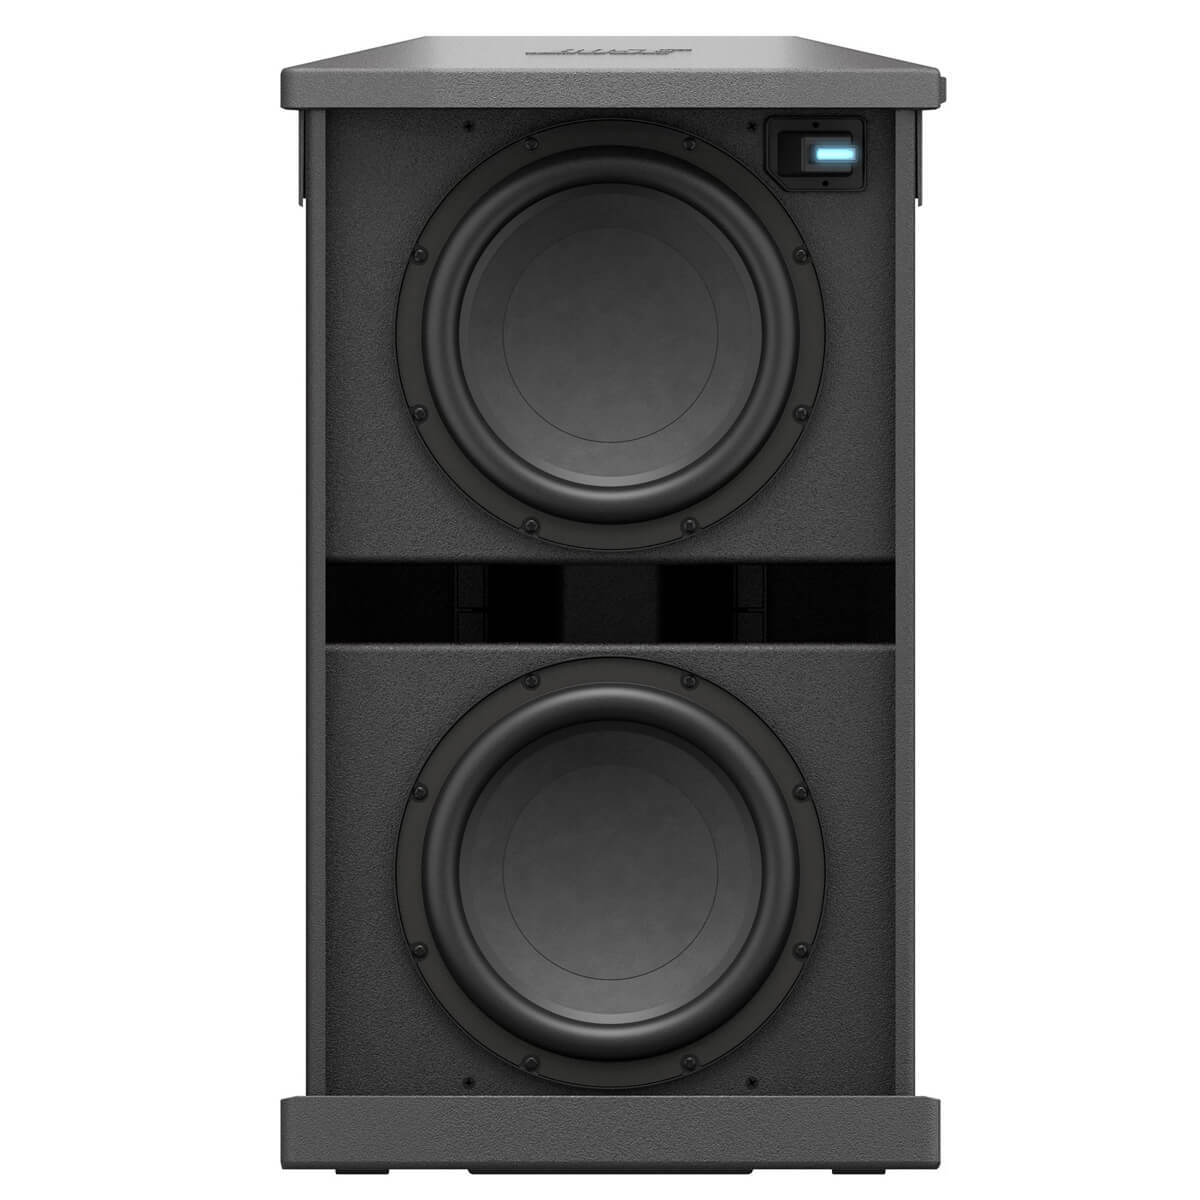 Bose F1 Subwoofer Sale Gary Anderson